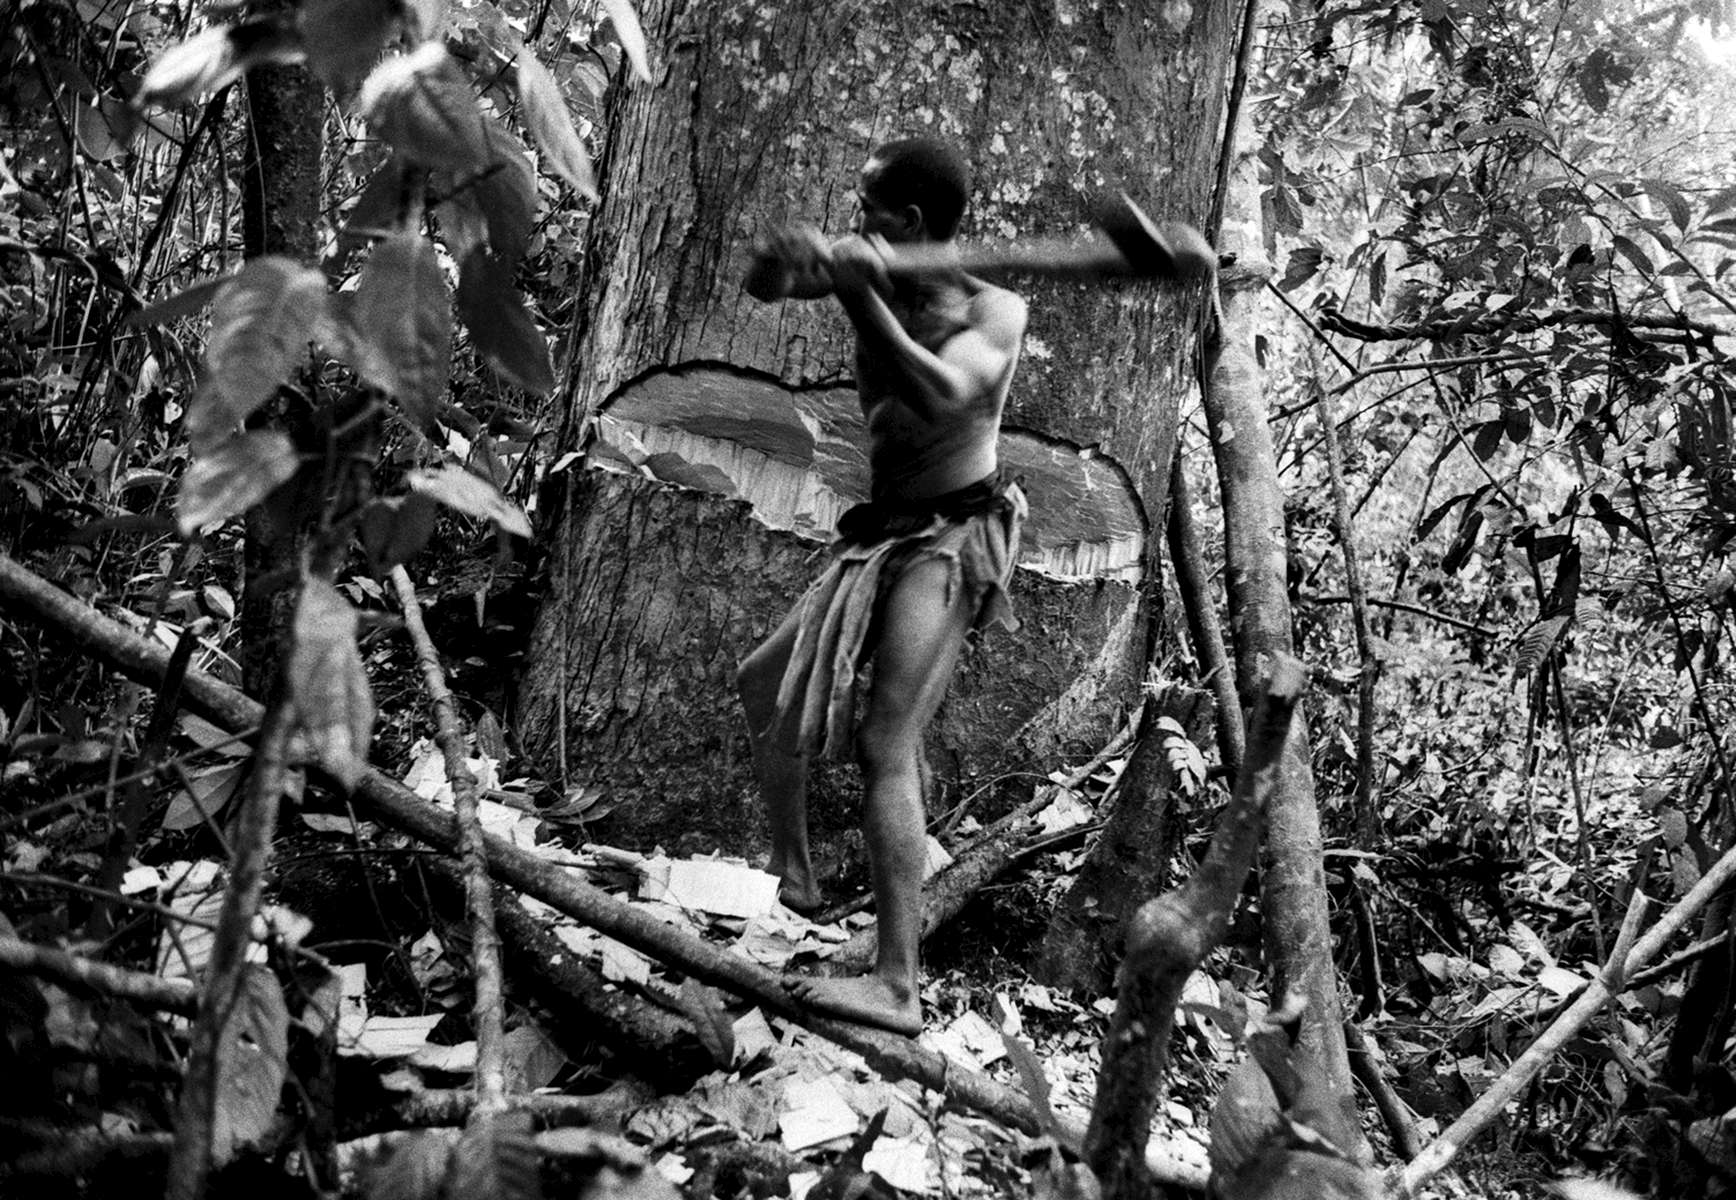 Pygmy man cutting down a tree to collect a bee hive deep in the equatorial forest, DRCongo 2004